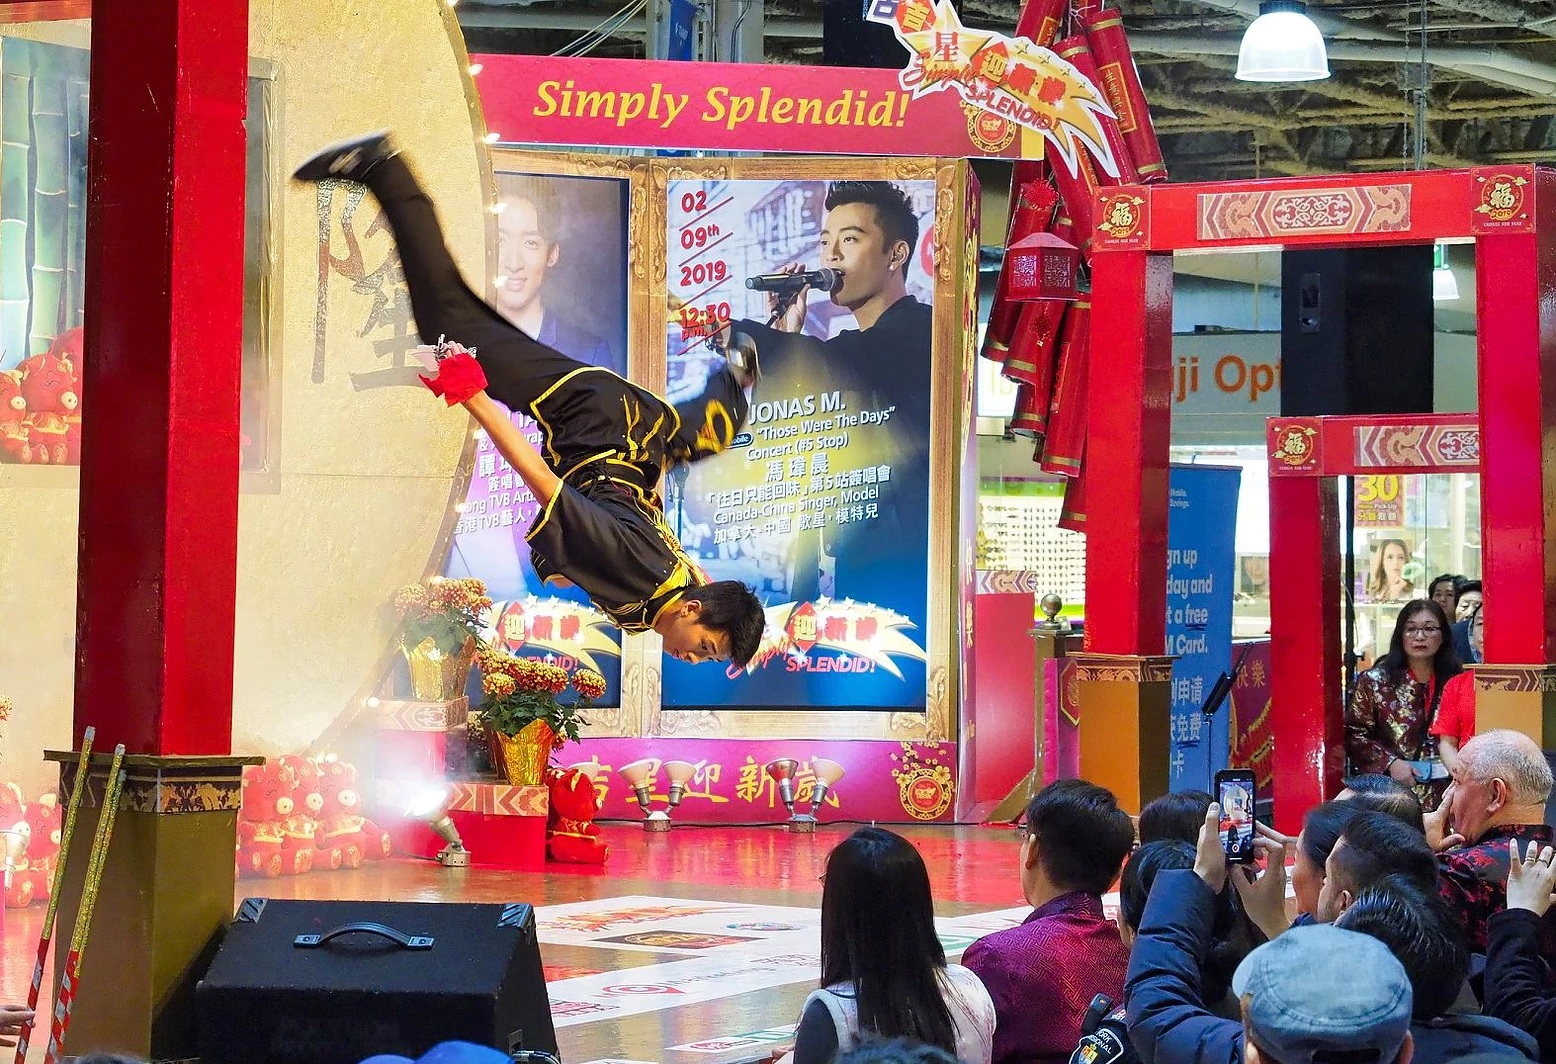 wayland-li-wushu-pacific-mall-chinese-new-year-2019-06.jpg